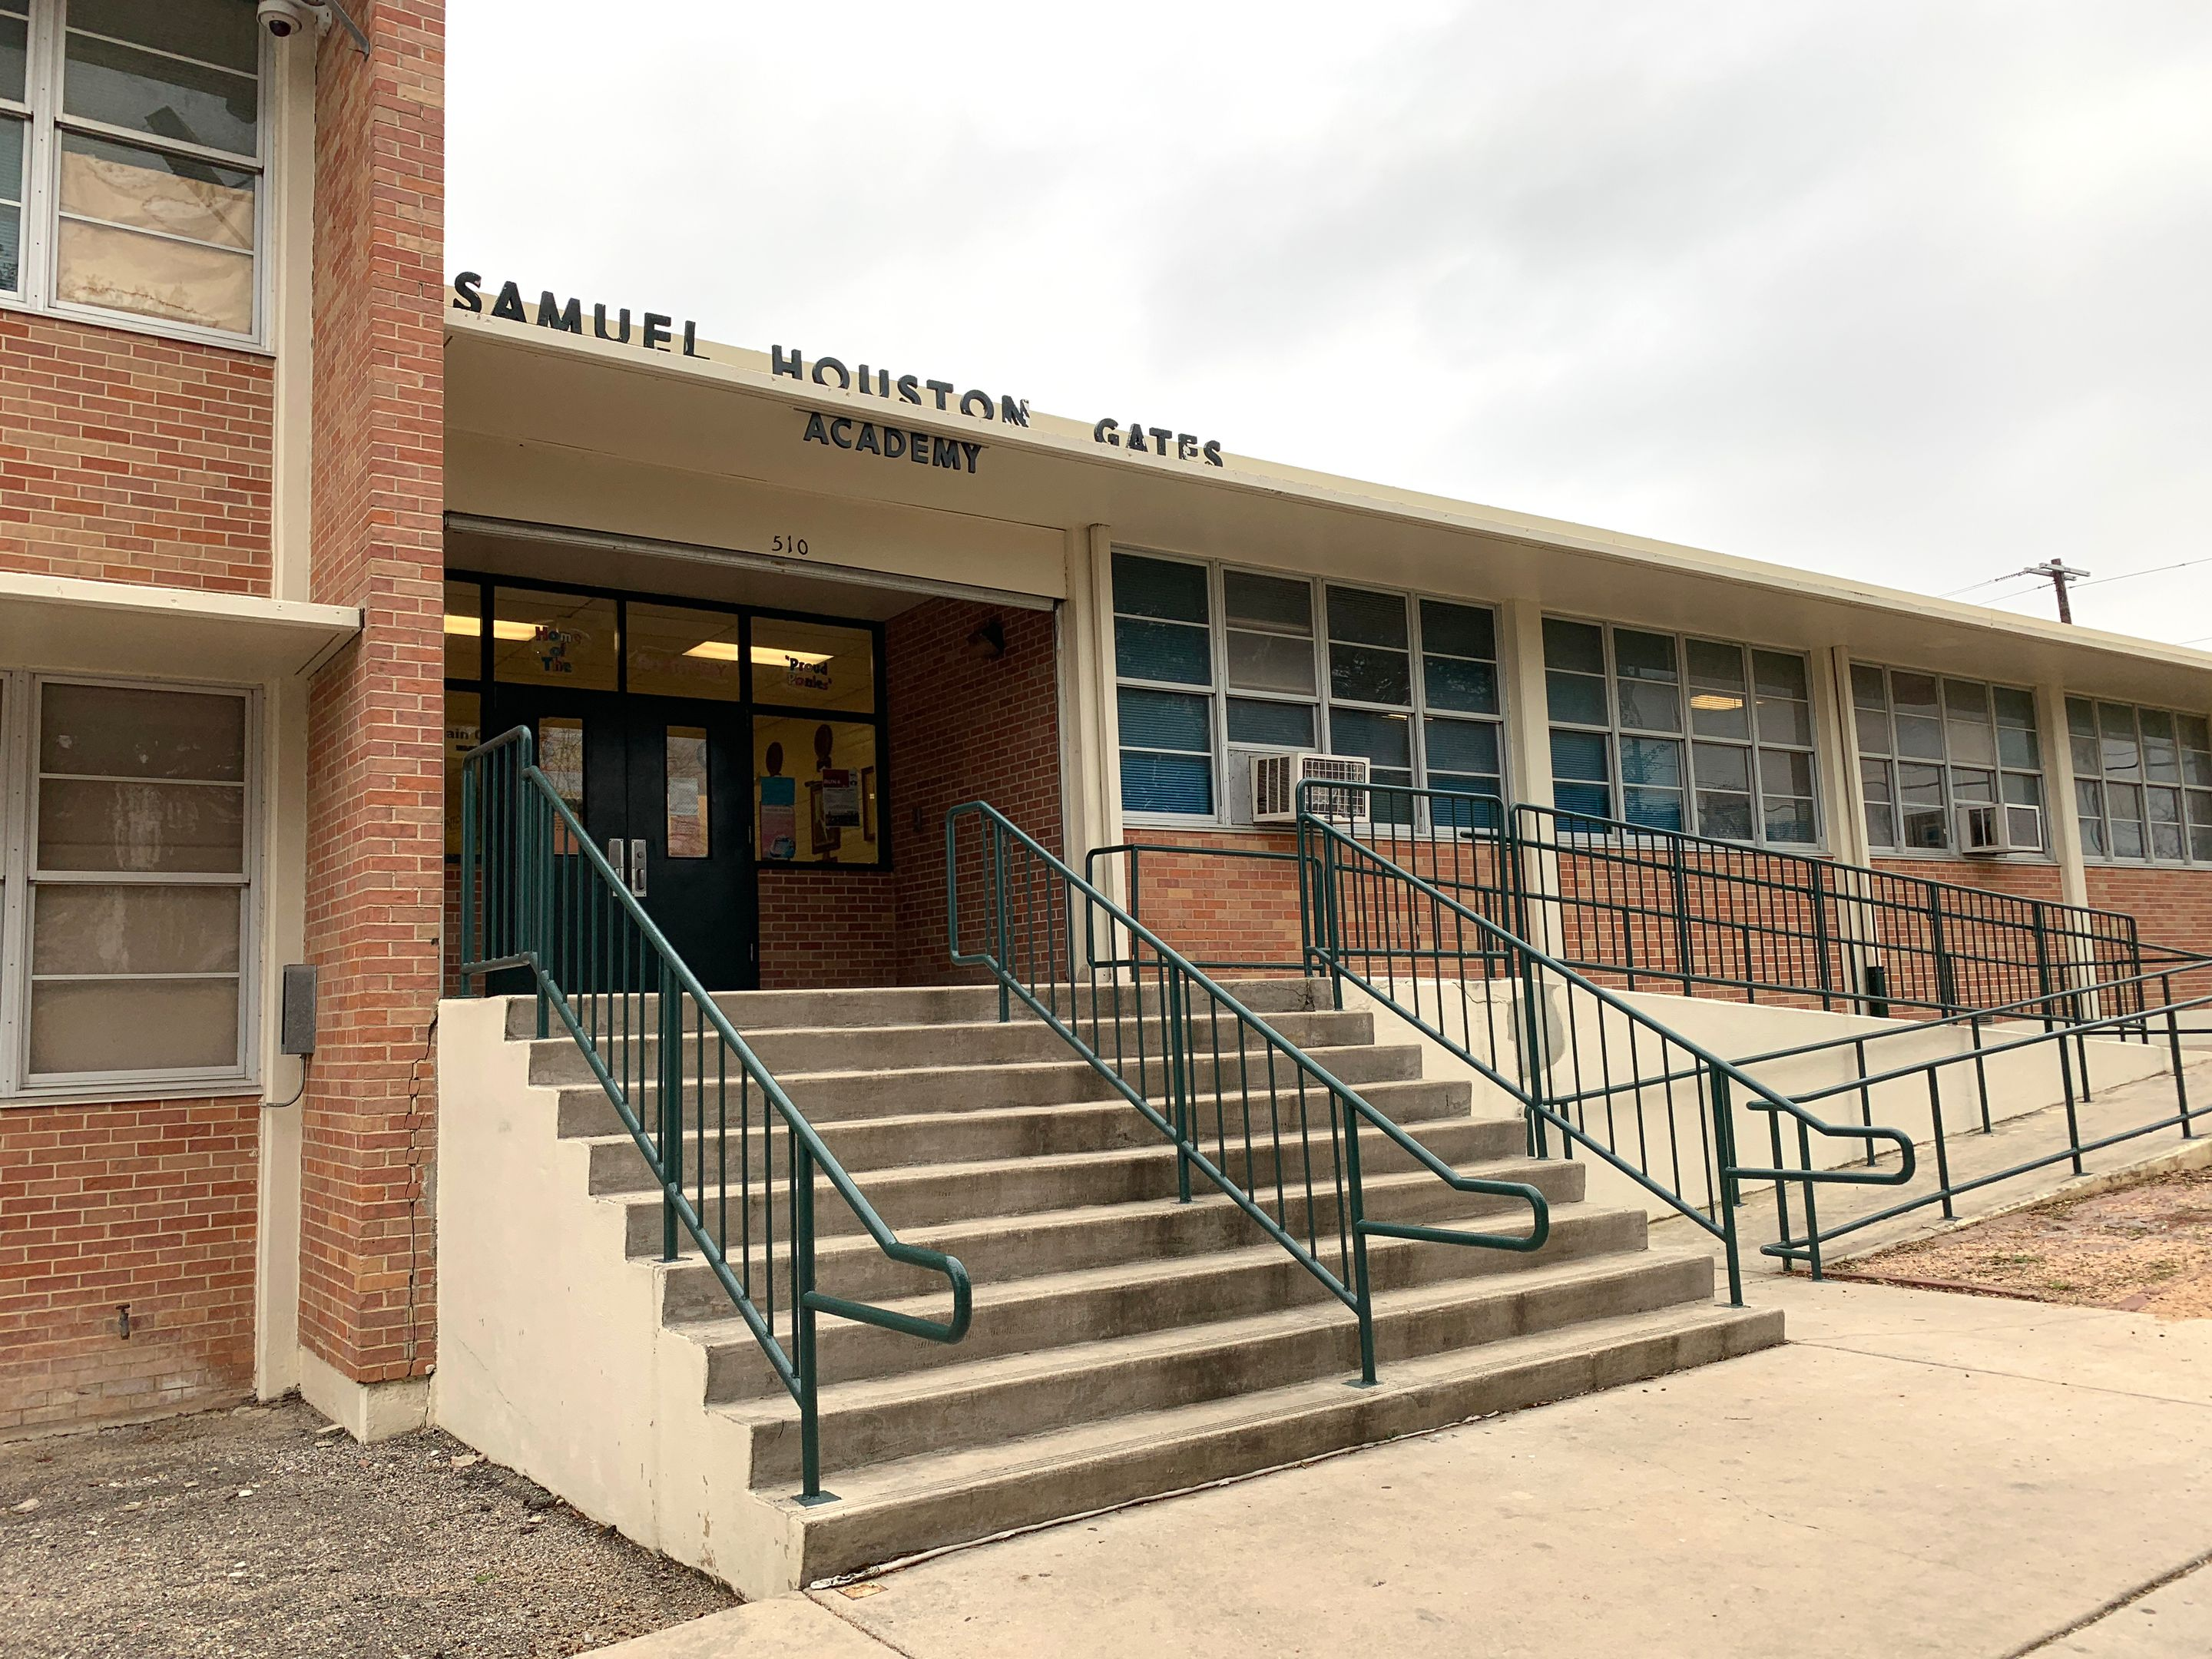 Samuel Houston Gates Elementary School, in San Antonio